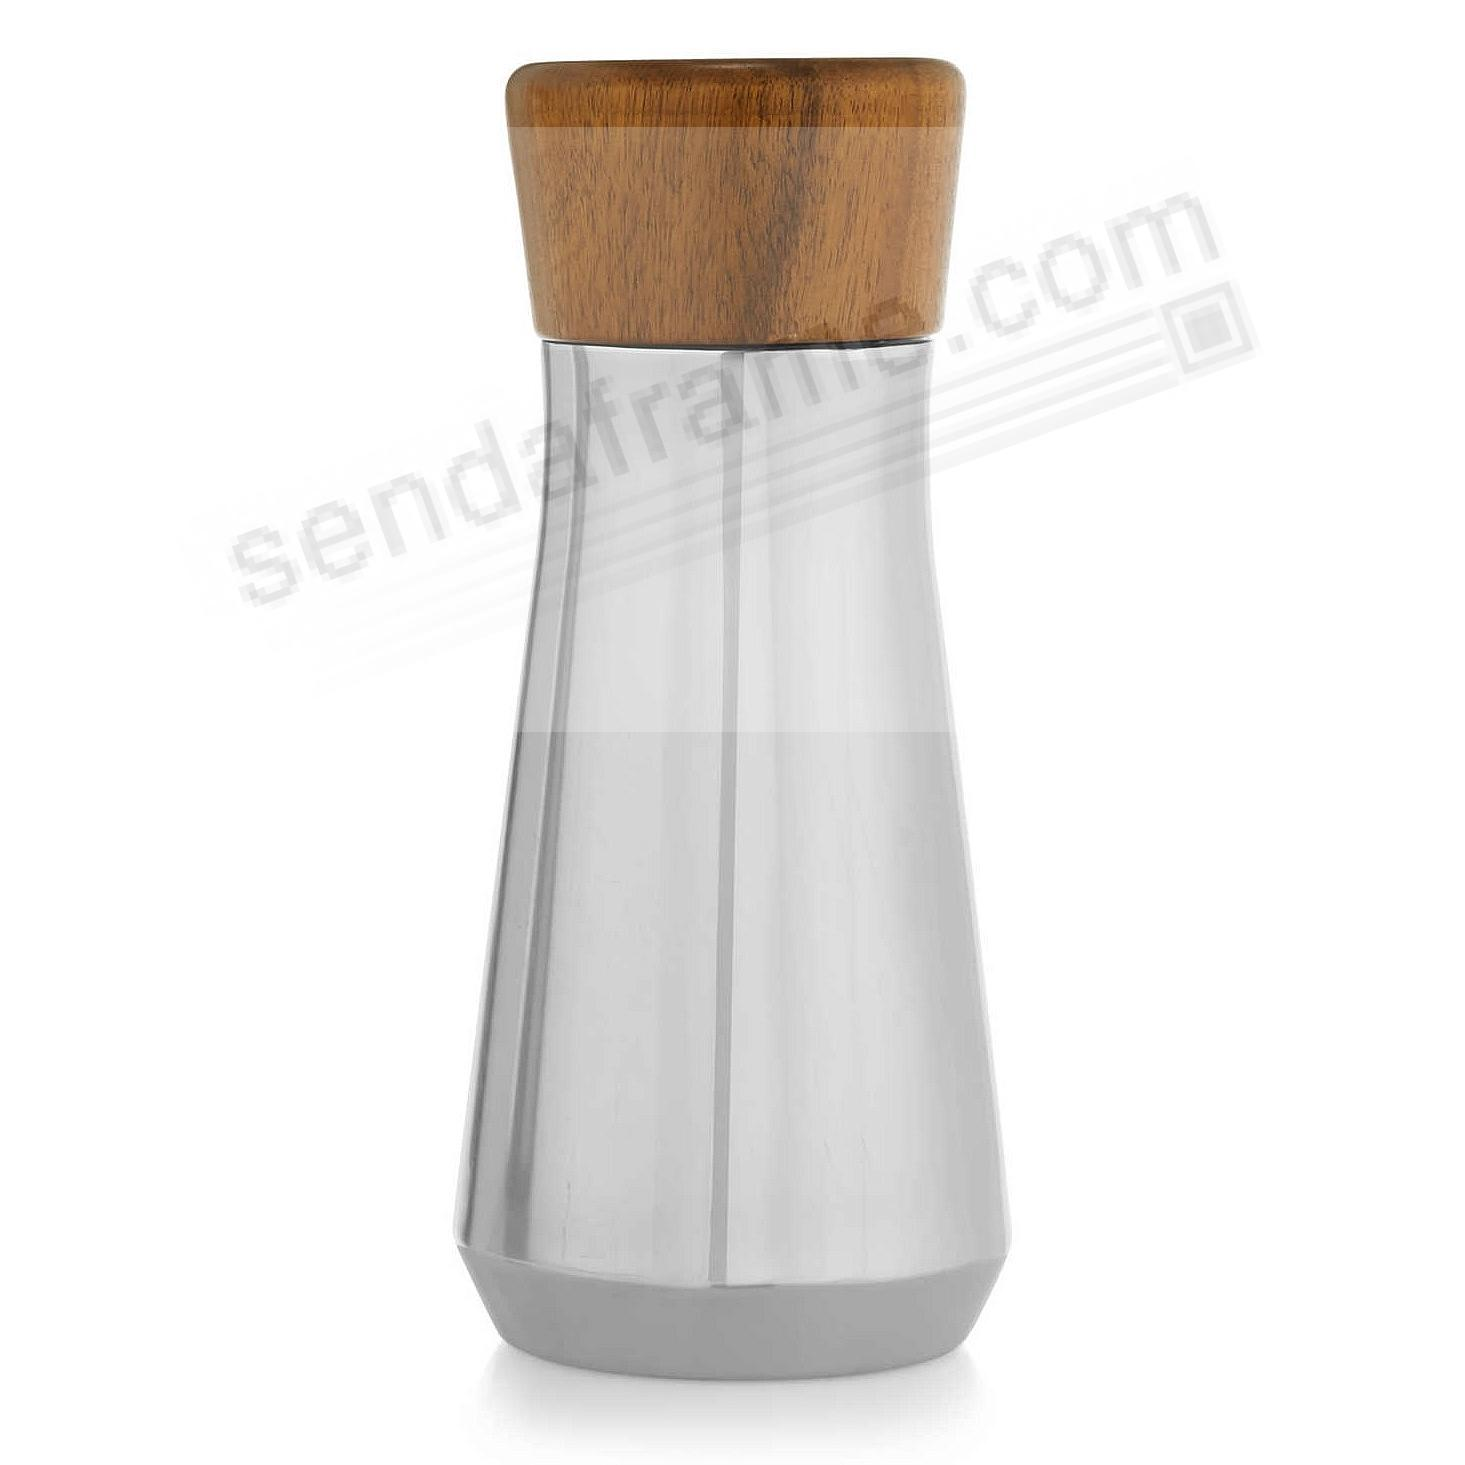 The VIE 9-inch COCKTAIL SHAKER crafted by Nambe®